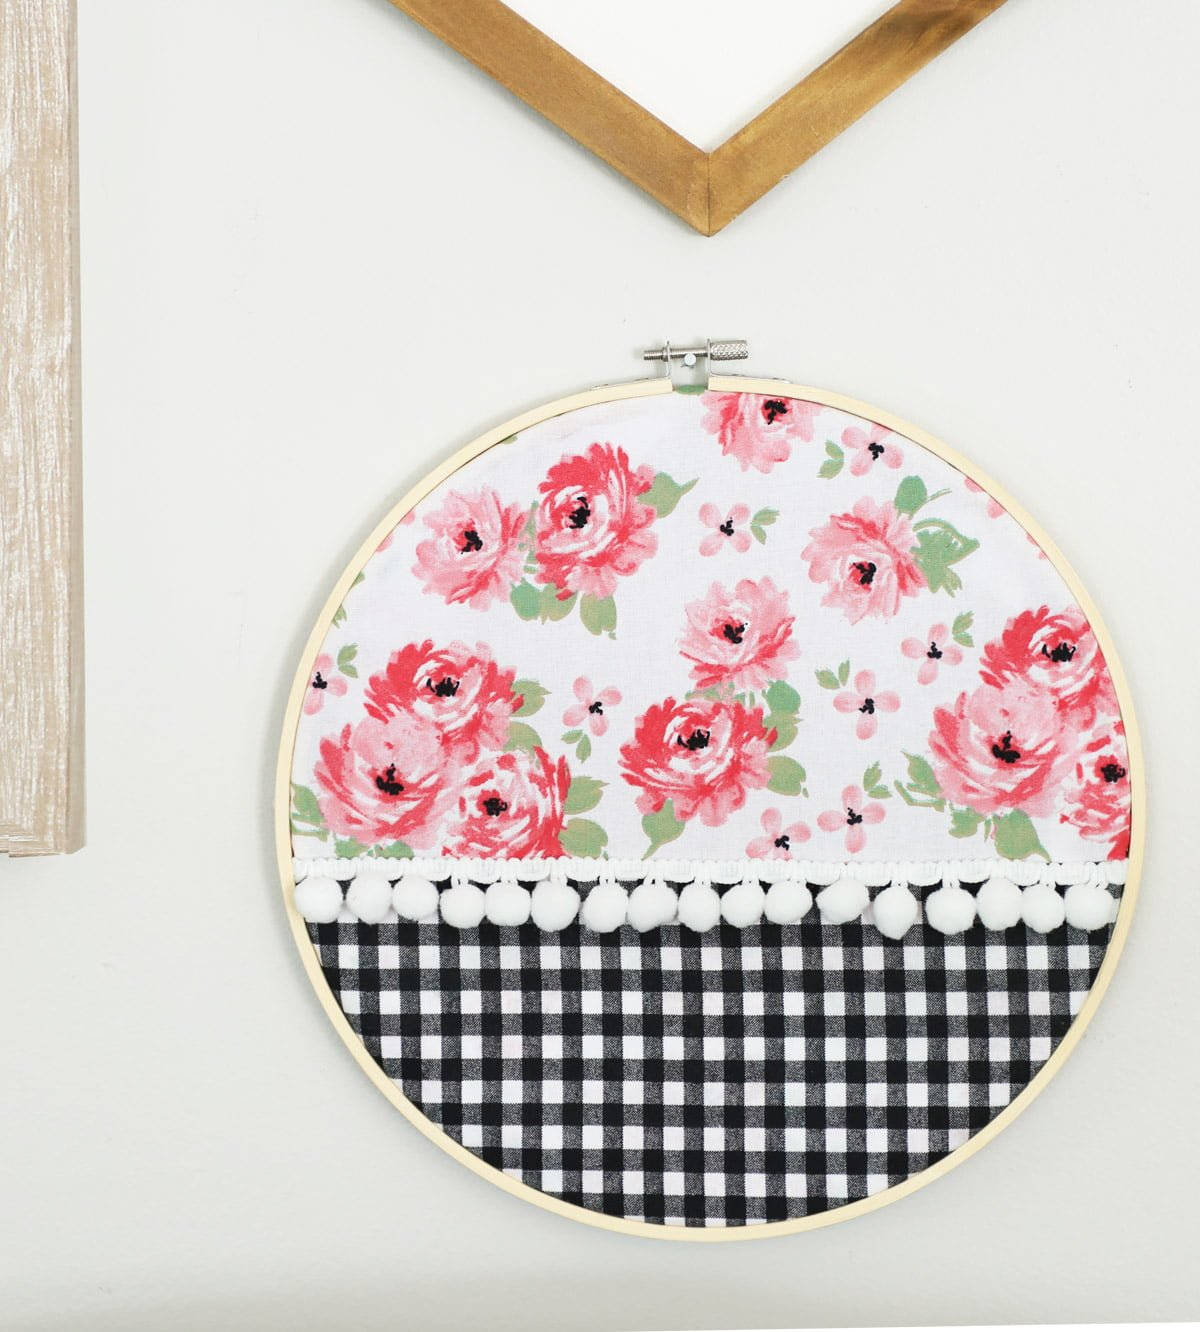 No Sew Embroidery Hoop Art